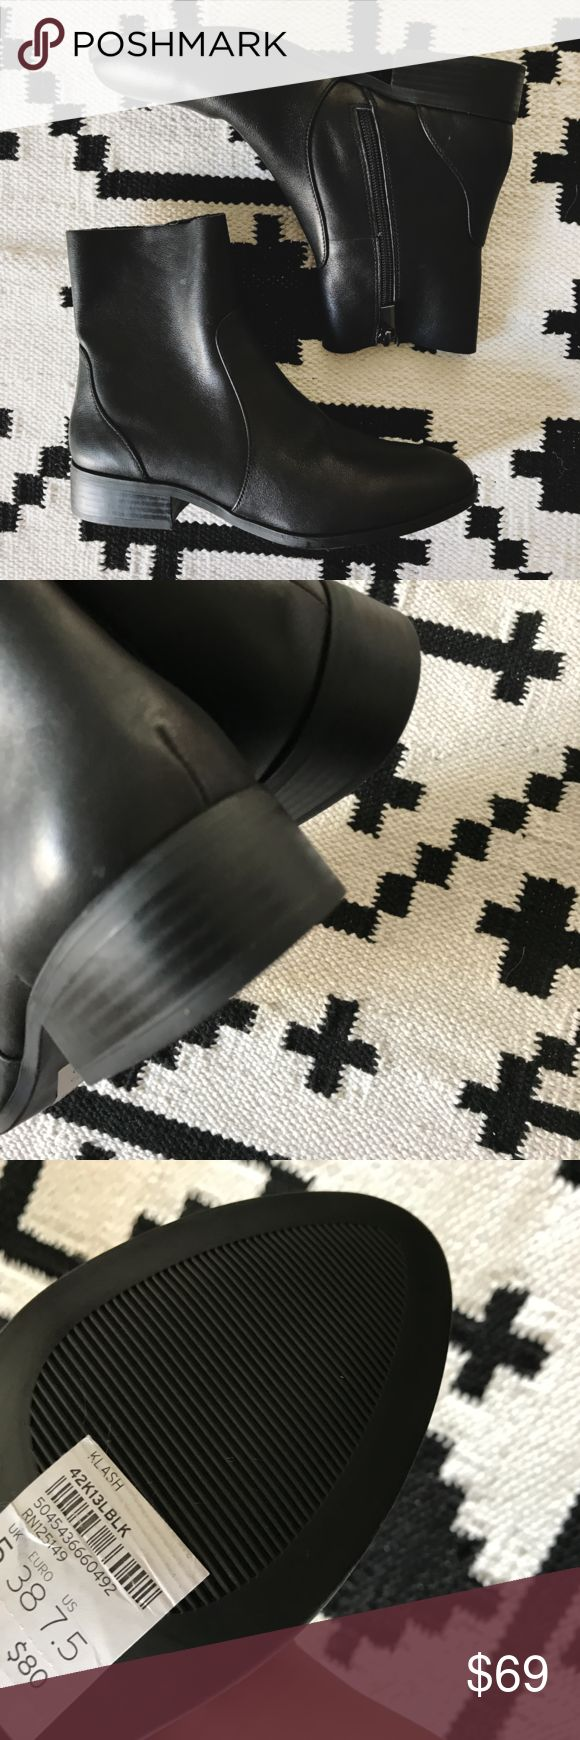 Topshop Klash Leather Sock Boots •Leather sock boots from Topshop  •Size US7.5/EU38, similar to Zara sizing. Best for a wide 7 or a narrow-normal 7.5.  •New with tag.  •No trades, no holds. Topshop Shoes Ankle Boots & Booties